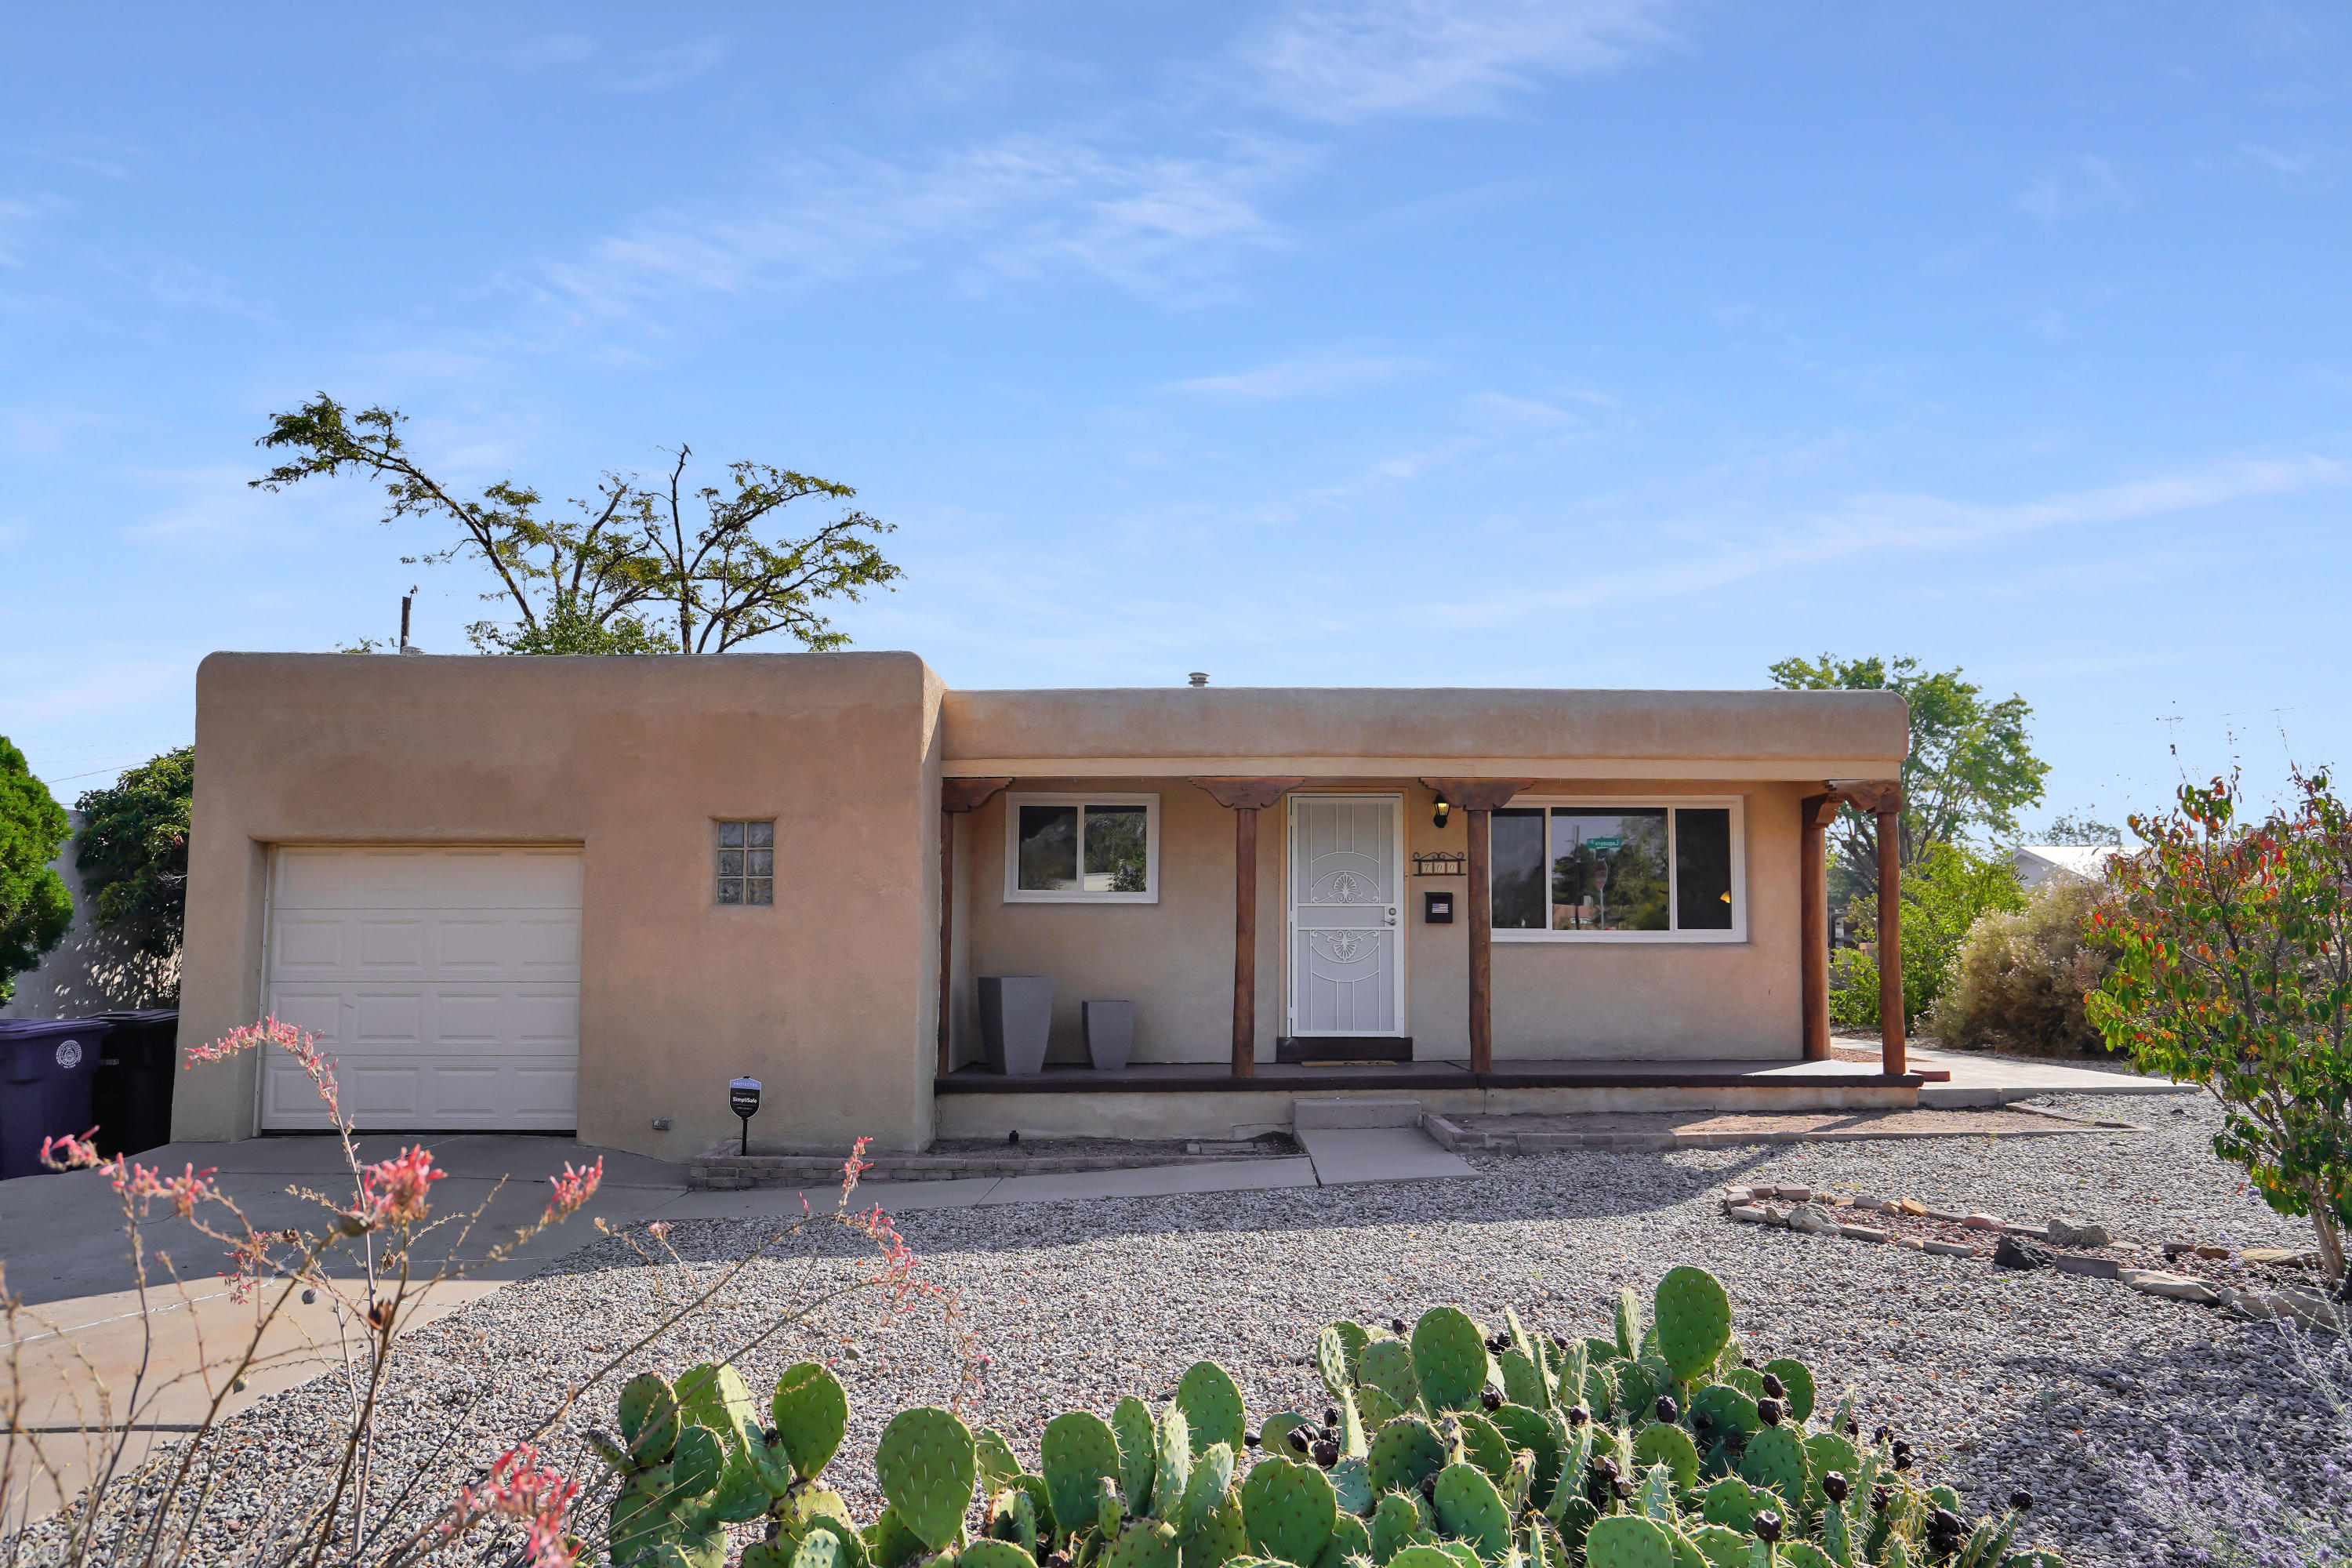 Welcome to this amazing Pueblo Style home situated on an oversized corner lot, featuring two spacious living areas, granite counter tops inside and out, and a garage with extra storage. Enter the home and you will see the refinished original hardwood floors throughout. To the left is the bar in kitchen, with impeccable granite and a chef's stove. The back room has enormous space for flexible usage. The three bedrooms continue the hardwood floors. Enjoy BBQing and entertaining in the backyard! Side yard has ample parking and the flowers are gorgeous in bloom! Close enough to high way access, Kirkland AFB, UNM, and malls. Windows under warranty! Come see it today!